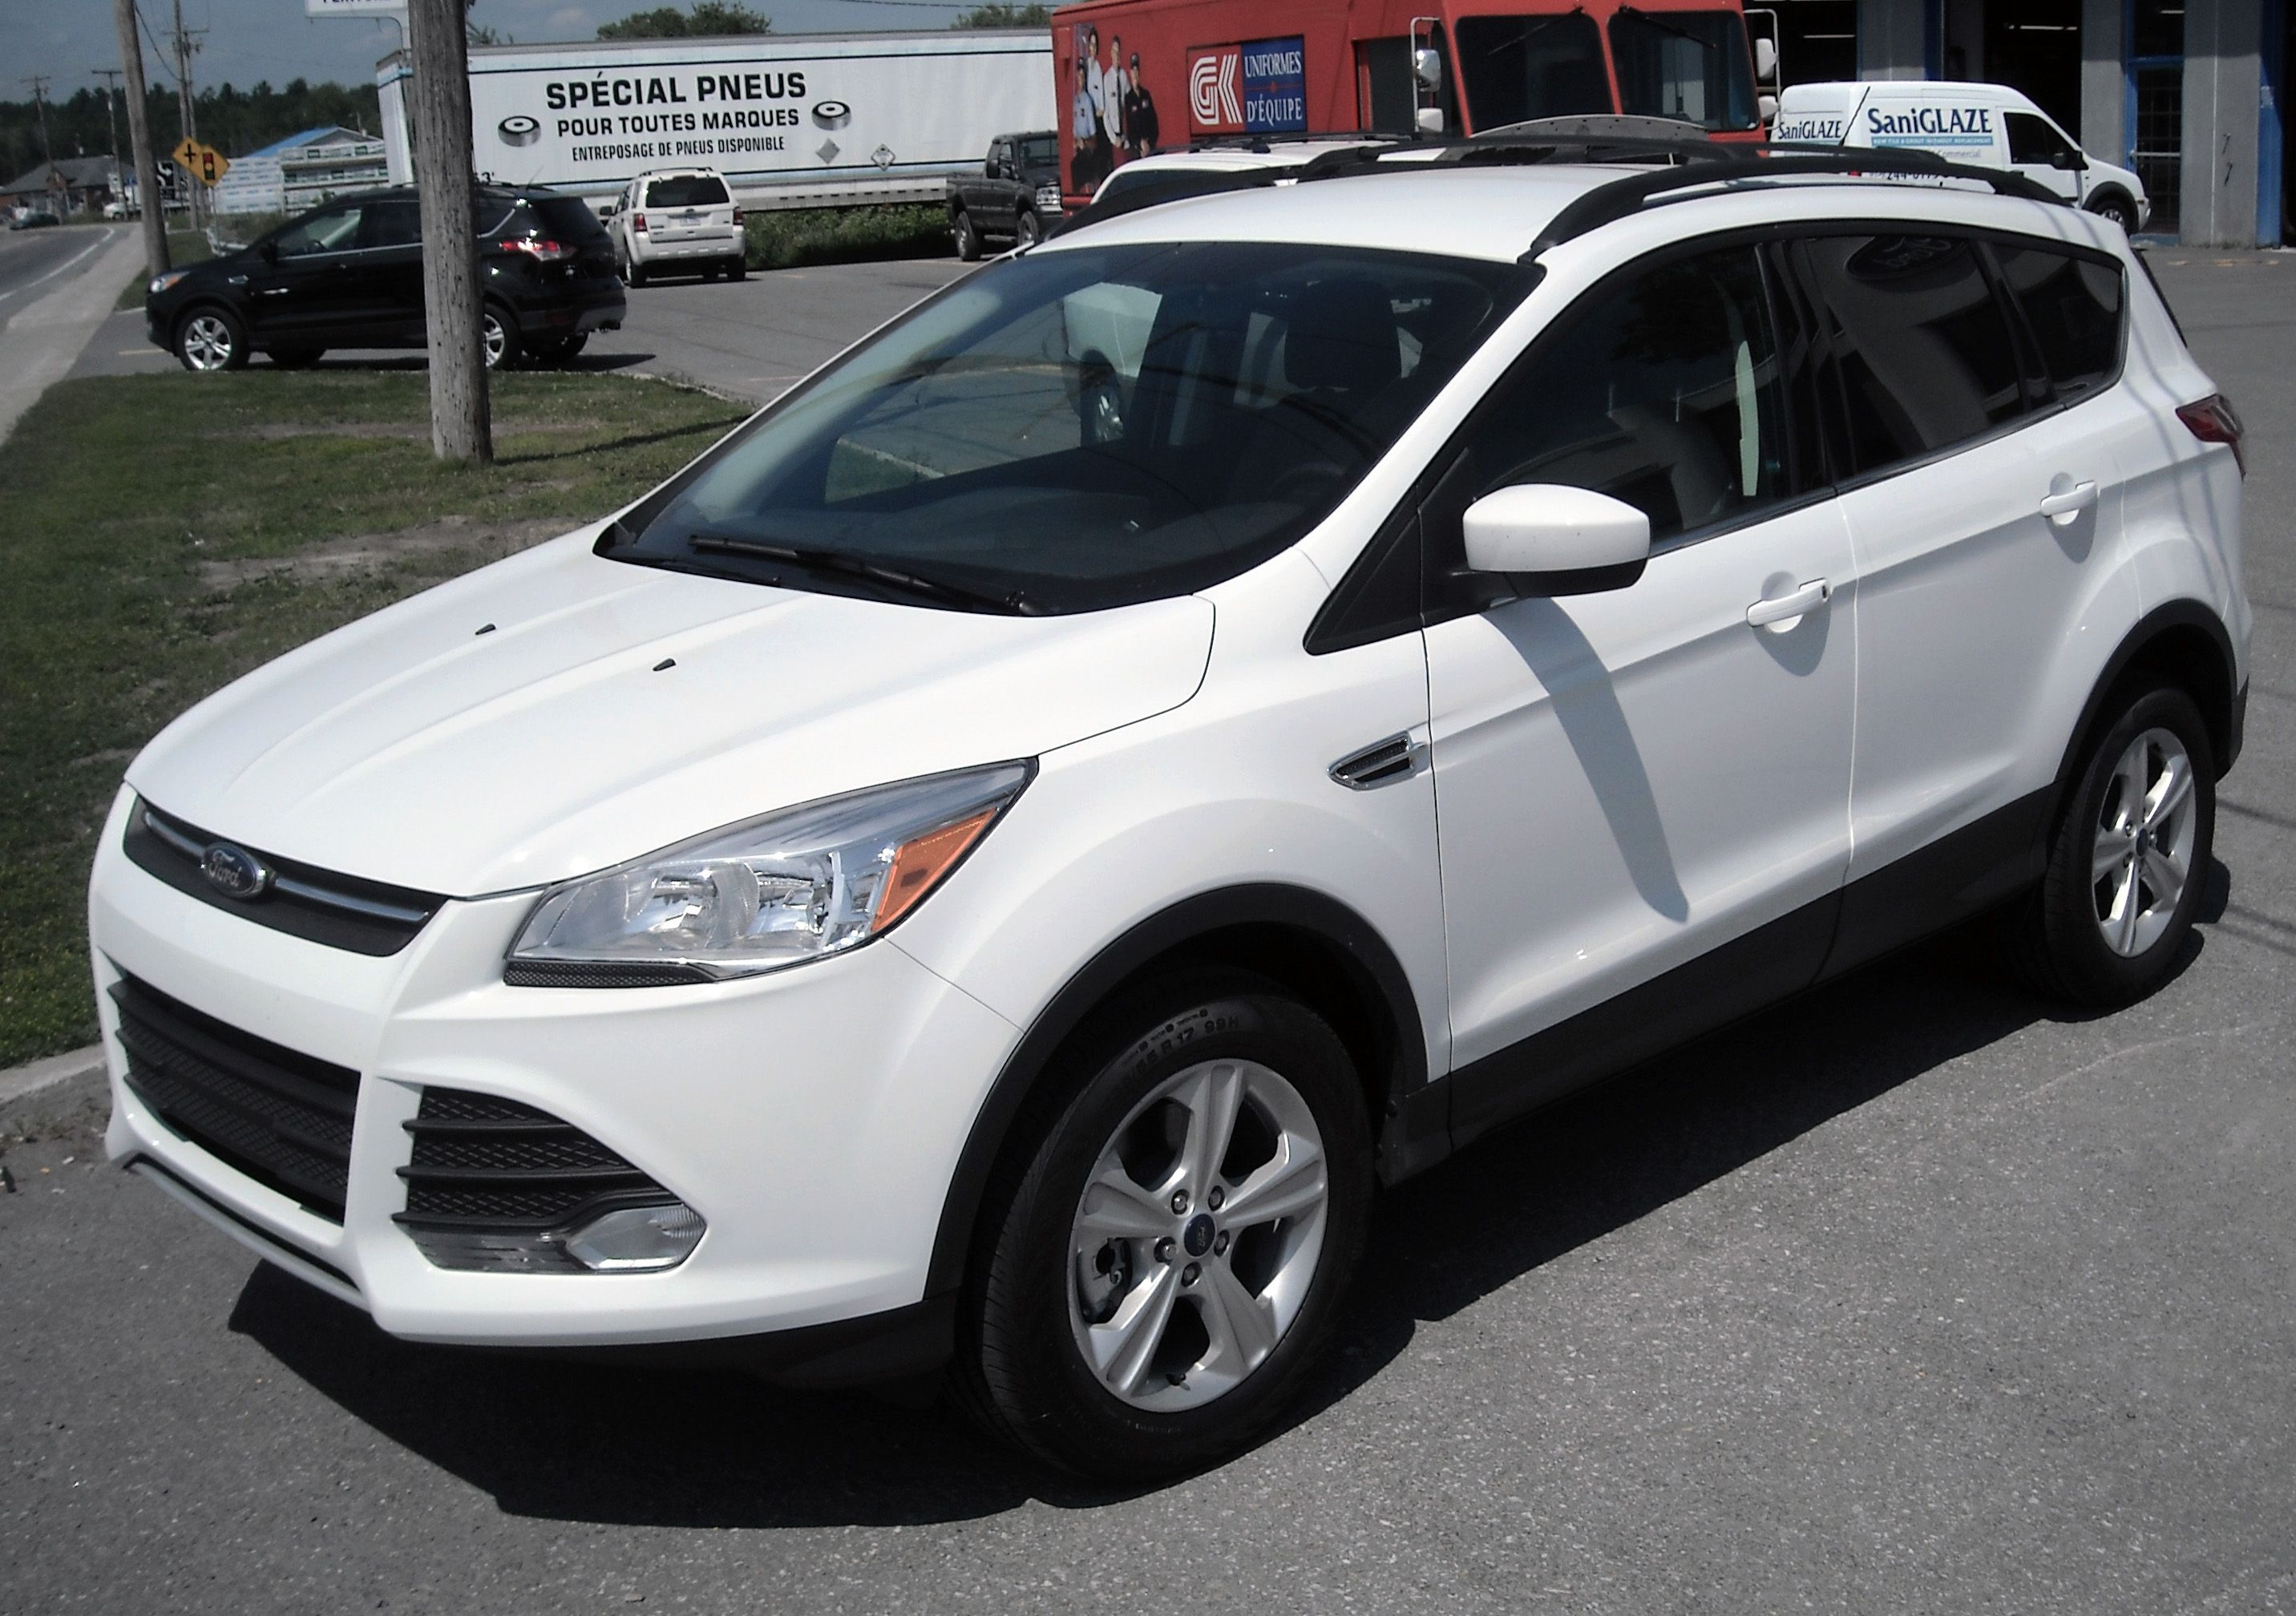 2018 ford escape 2 0l ecoboost fwd release date and price the attention press for a significantly upgraded ford vacation arriving for 2018 presen